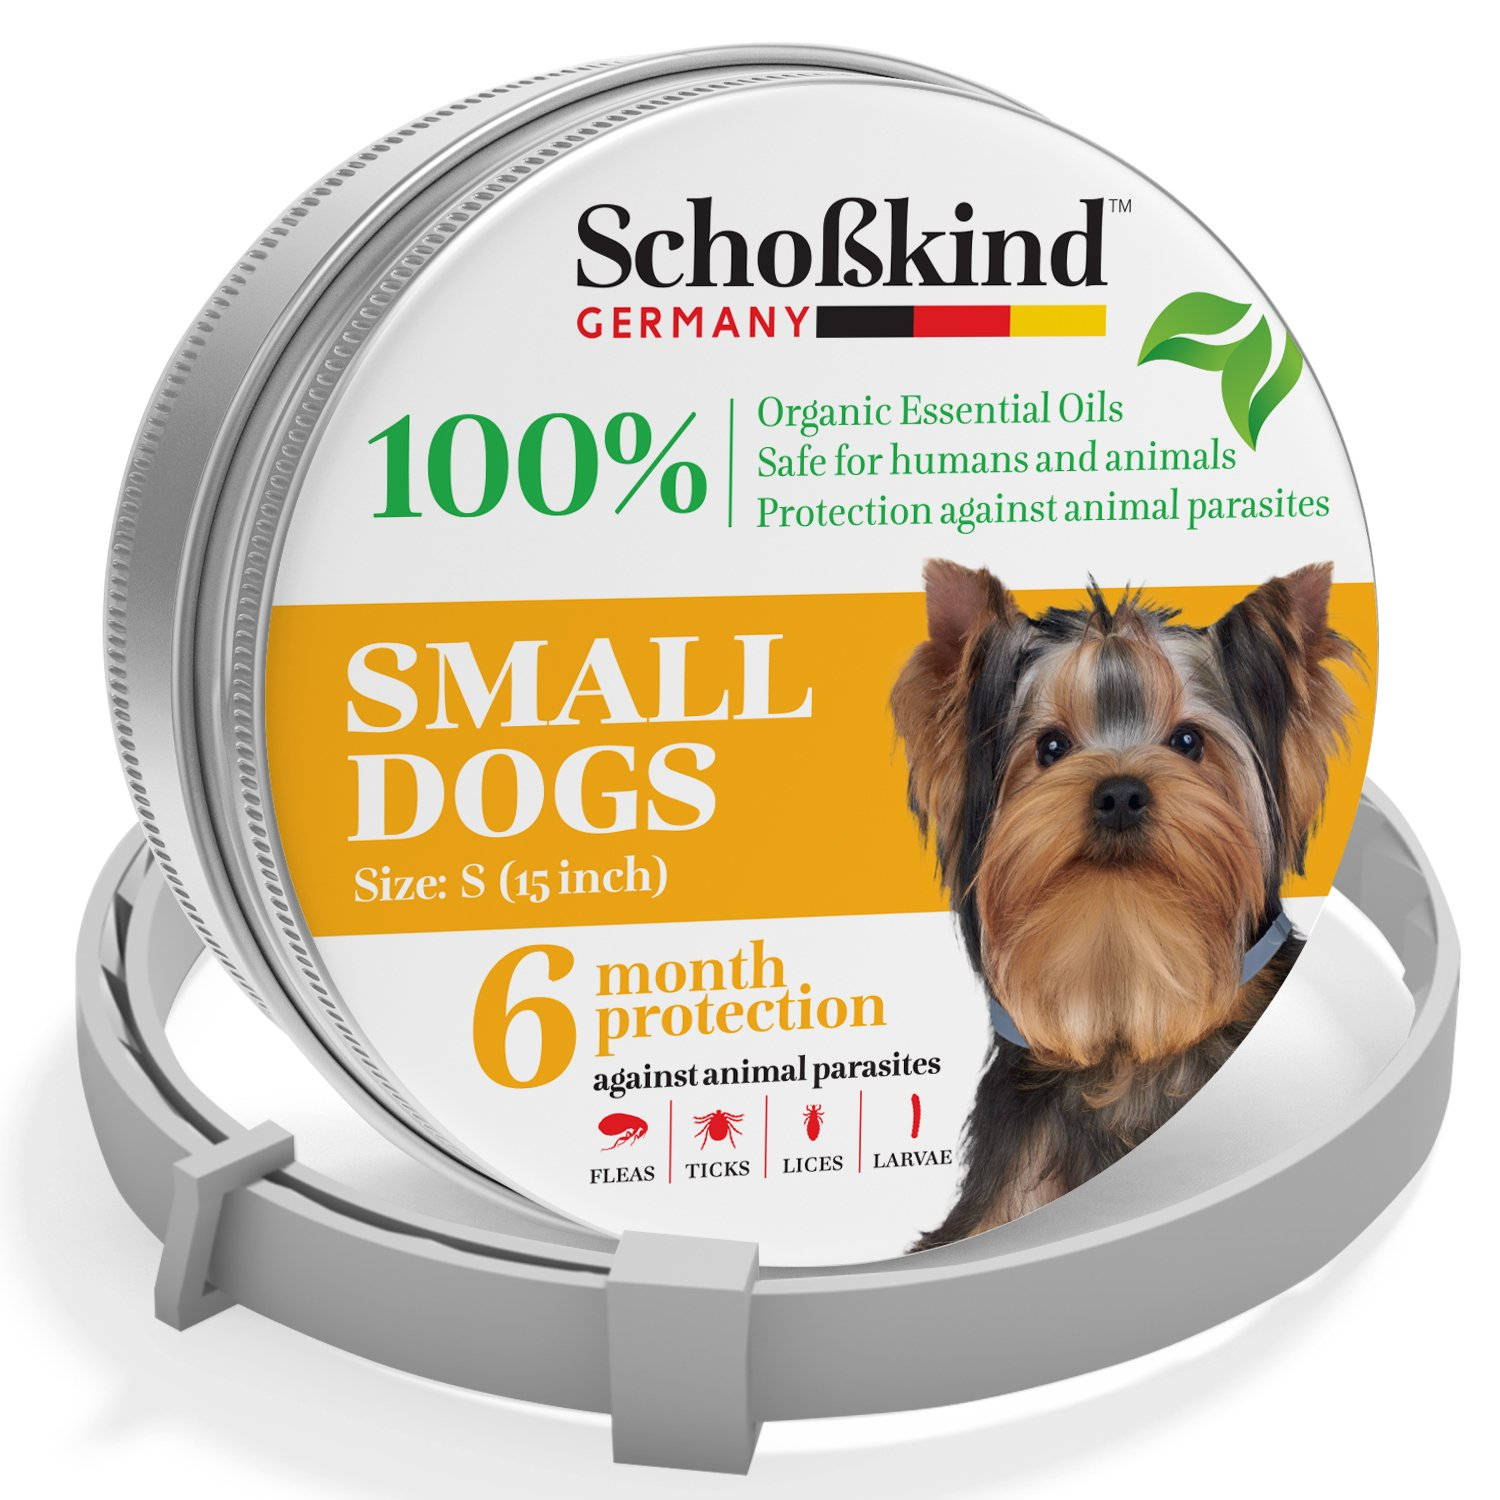 Organic Way Flea and Tick Collar for Dogs - Made for Germany - 100% Safe & Eco-Friendly – Based on Natural Oils - Flea and Tick Prevention Pets - 6-Month Protection – Waterproof Dog Flea Collar (D10)